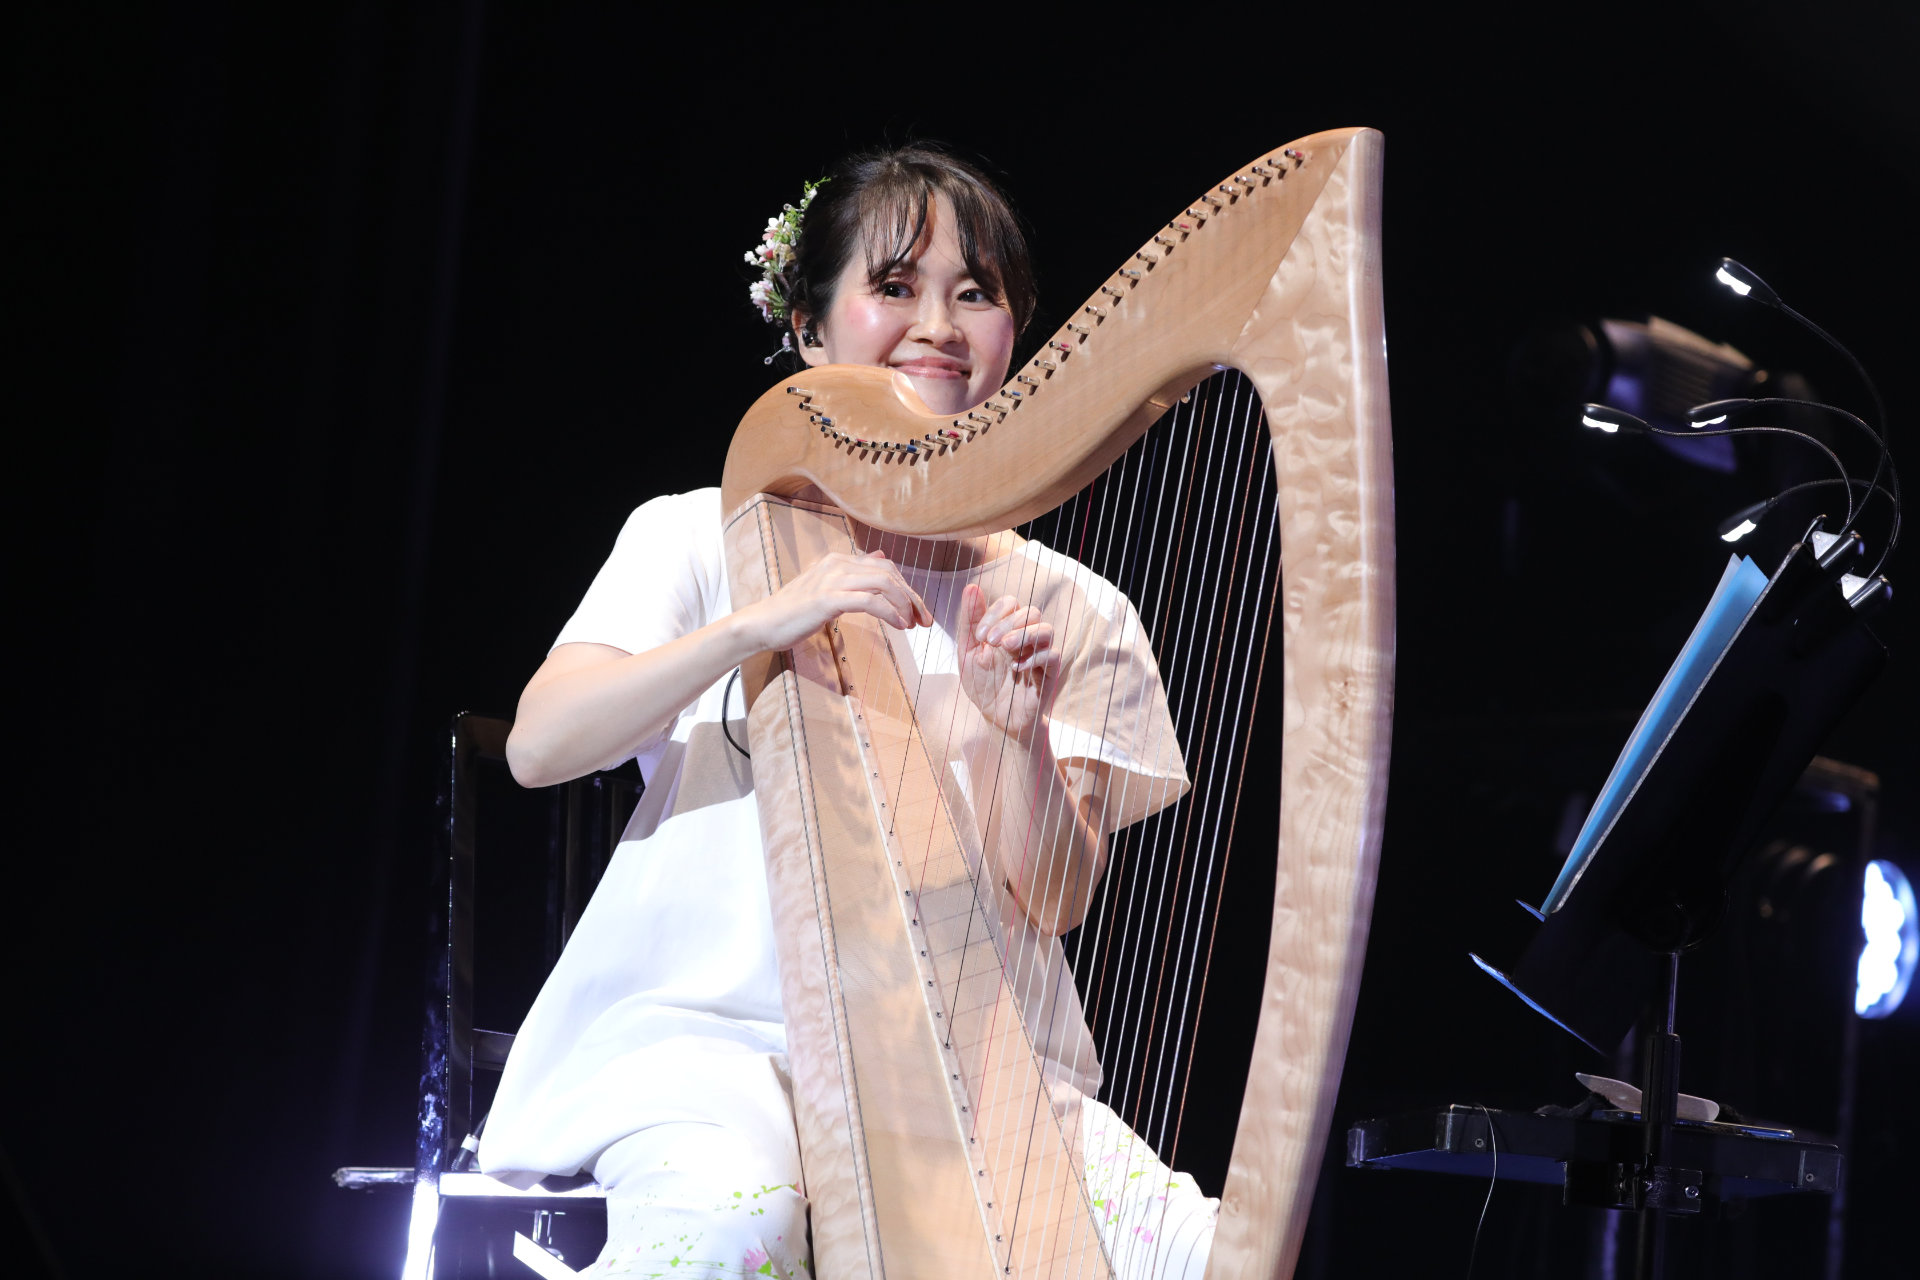 A harpist dressed all in white performs at the Chrono Cross concert.